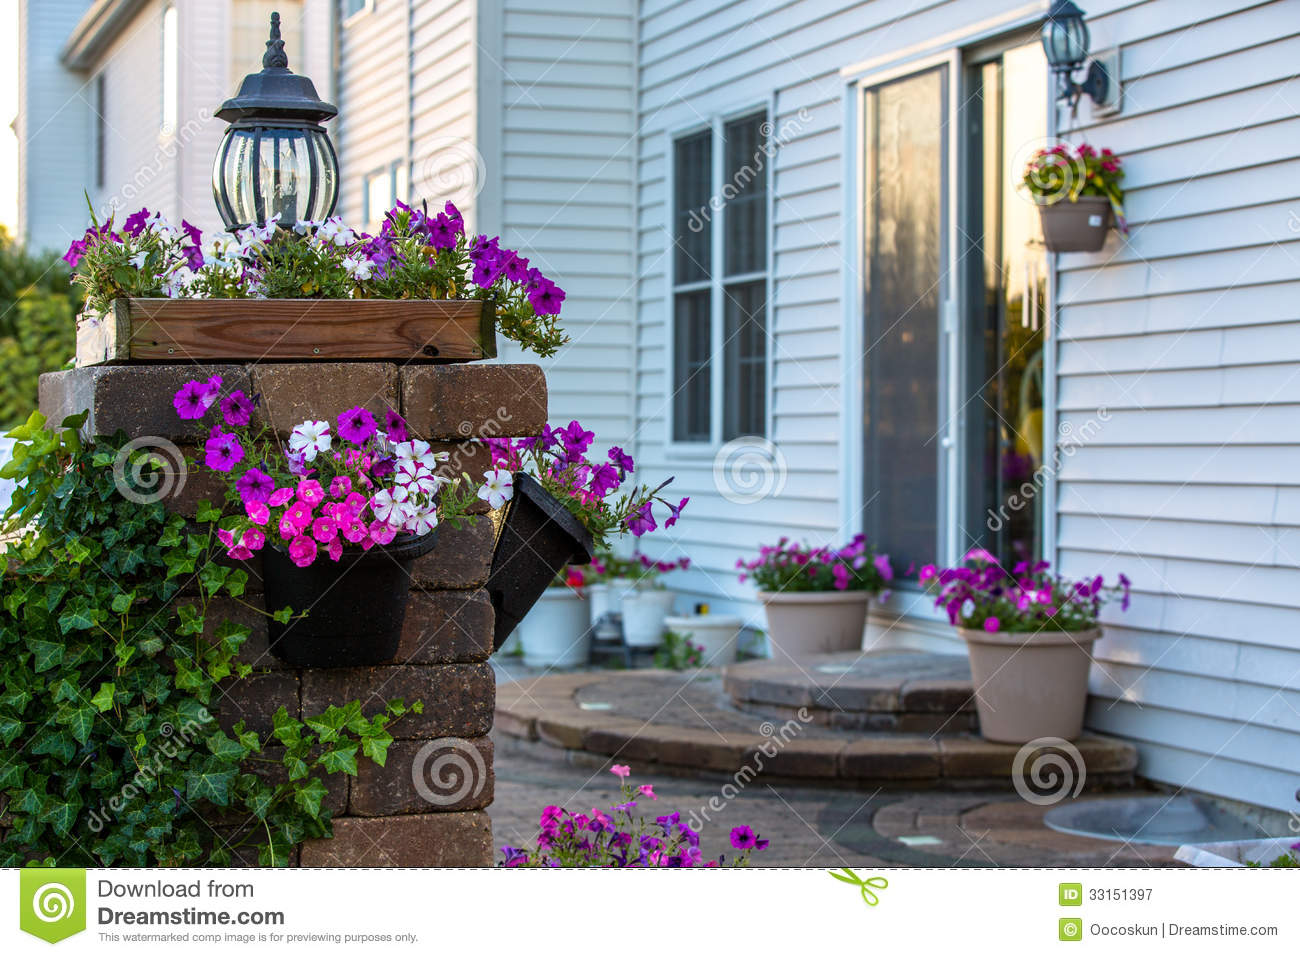 Download Brick Patio And Pillar With Flowers Stock Image   Image Of Brick,  Floral: